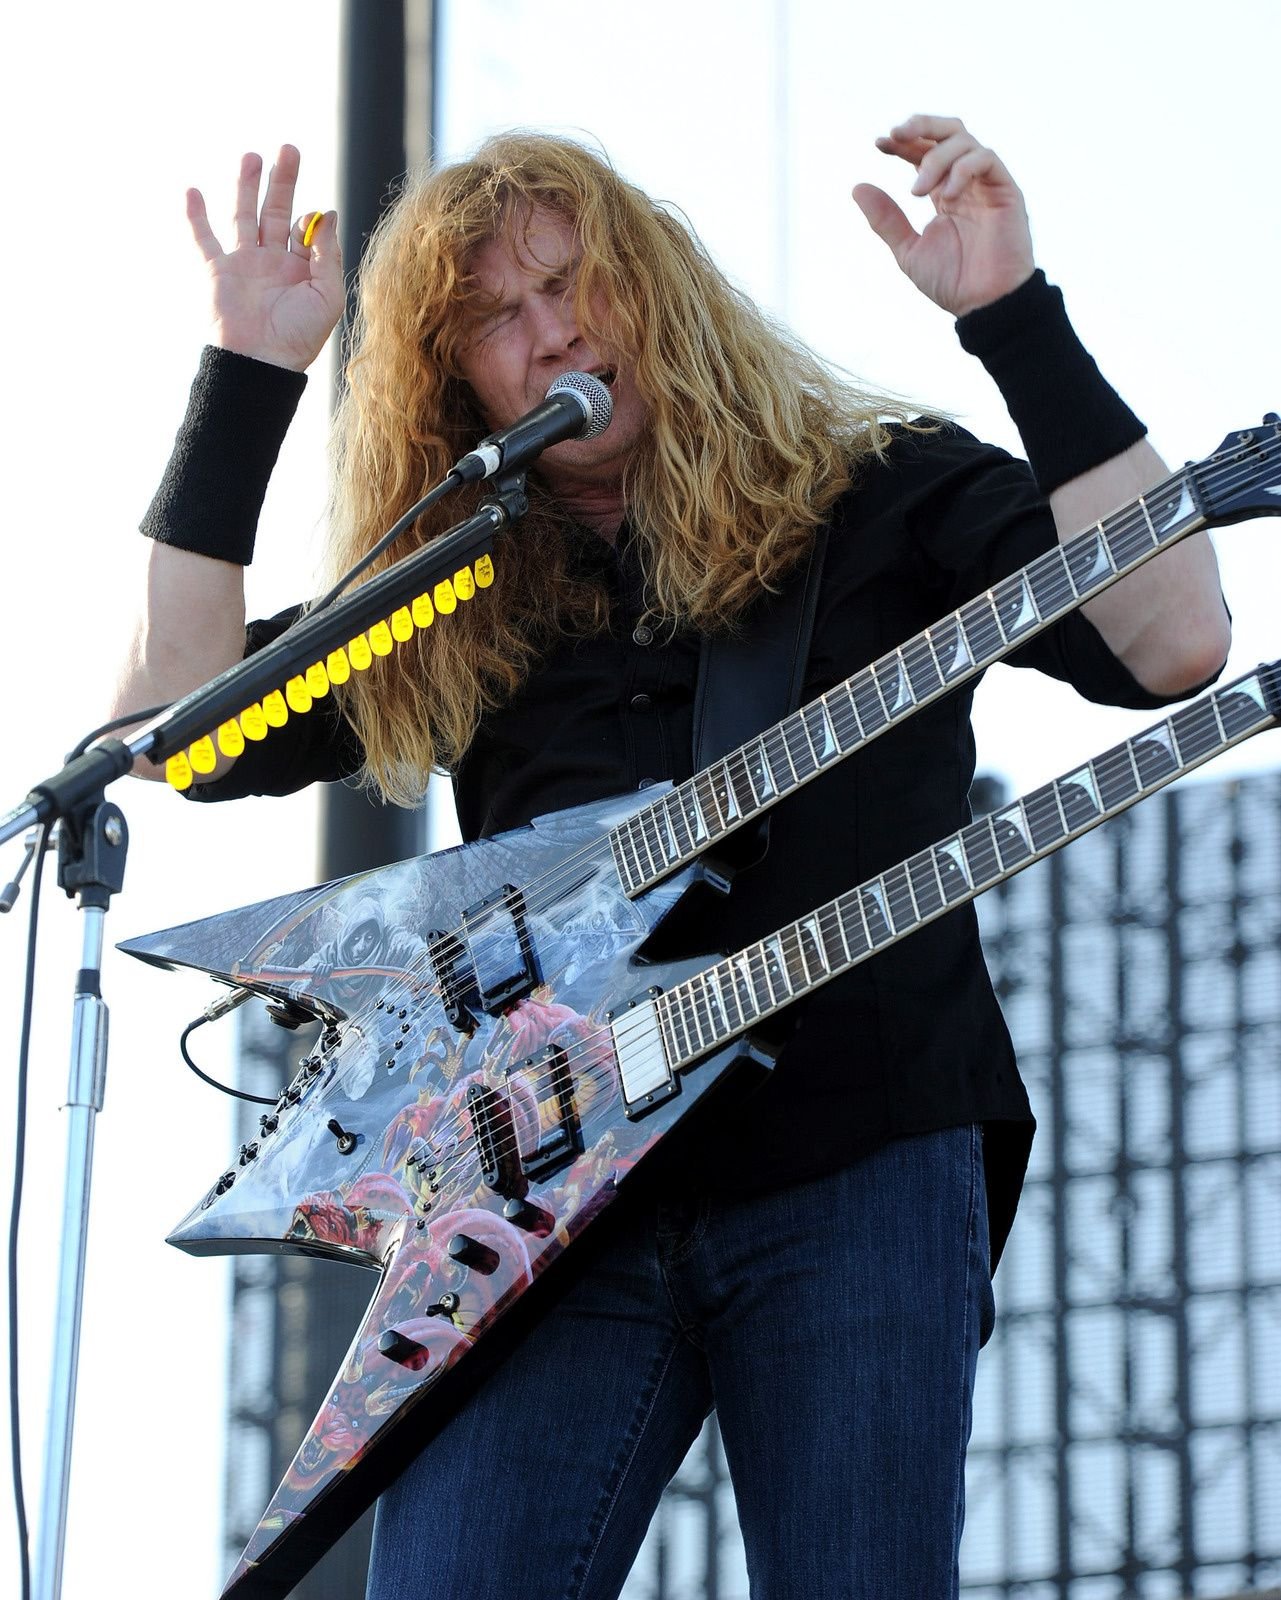 Dave Mustaine - Megadeth, 2011